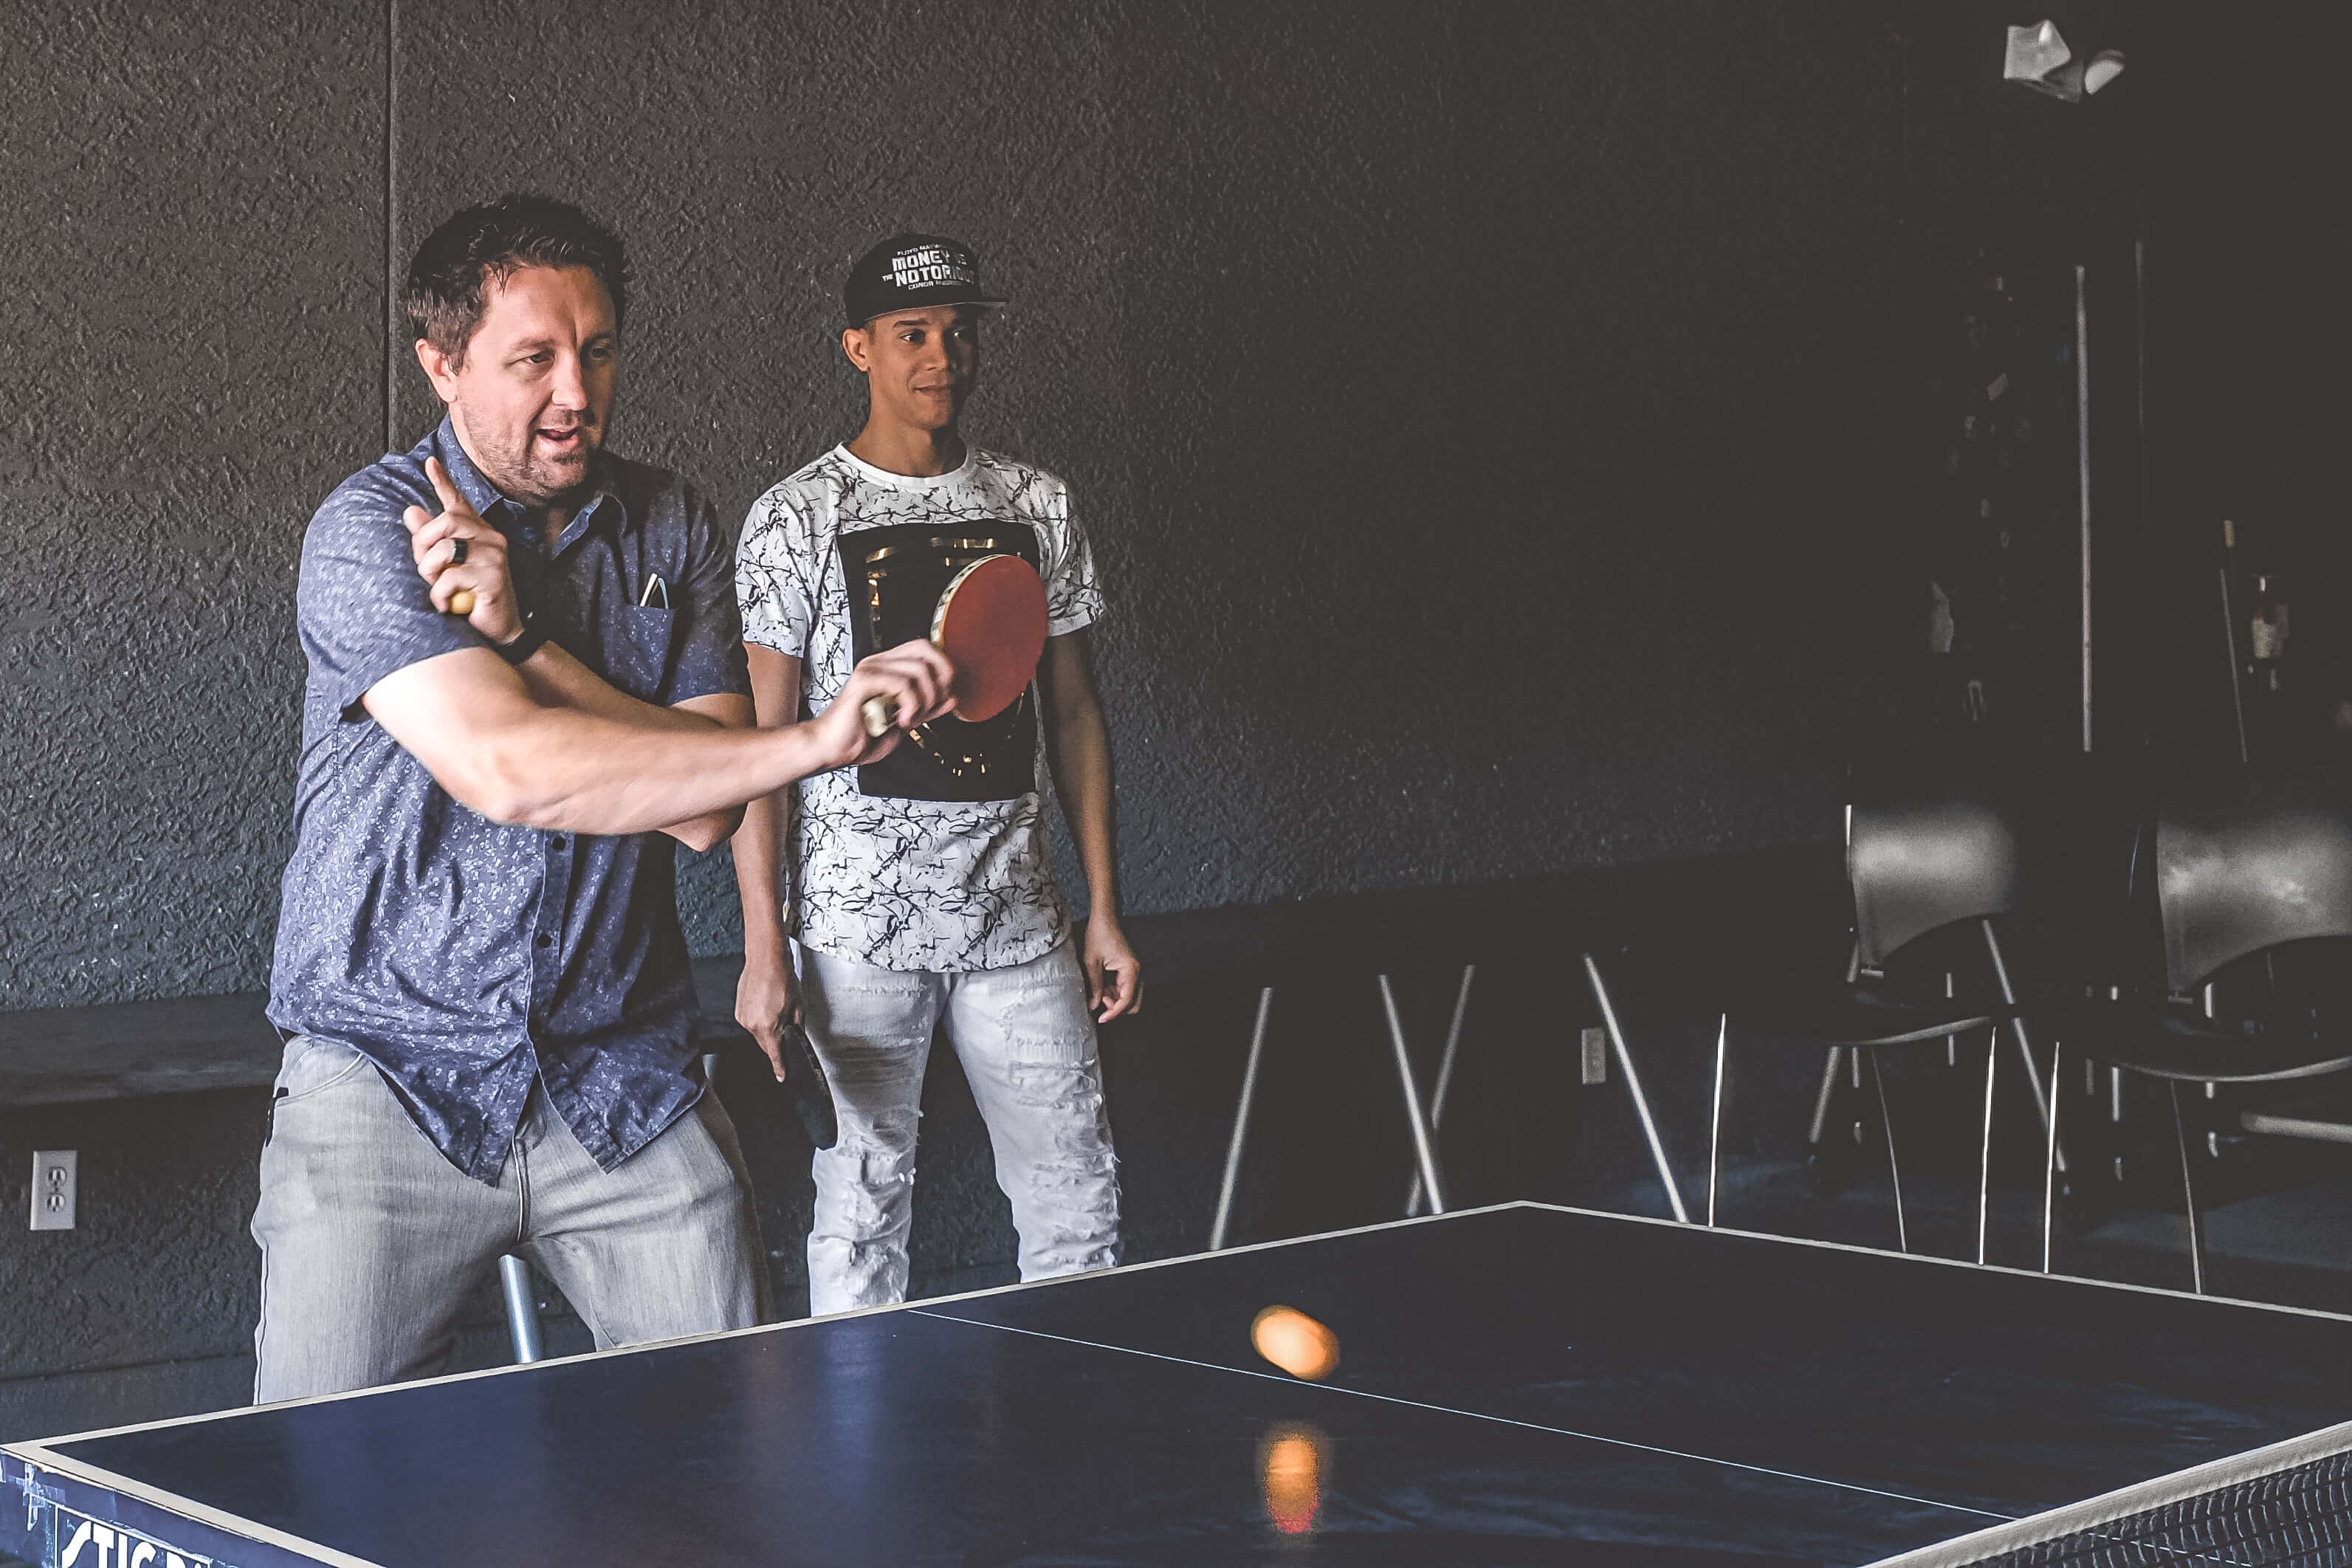 10 things to know about table tennis